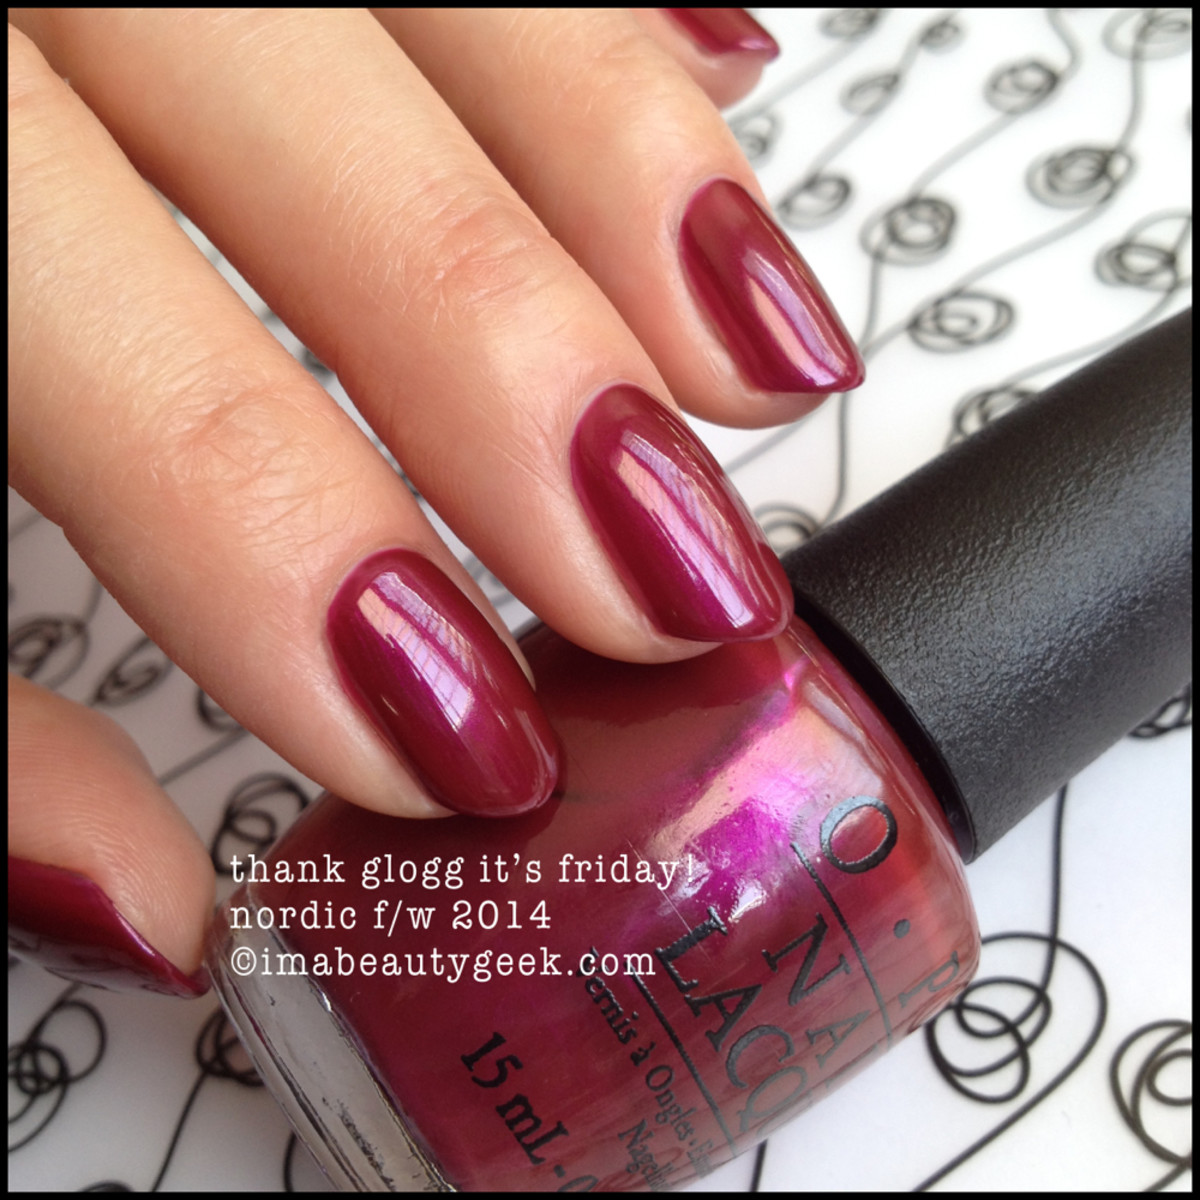 opi nordic thank glogg it's friday!